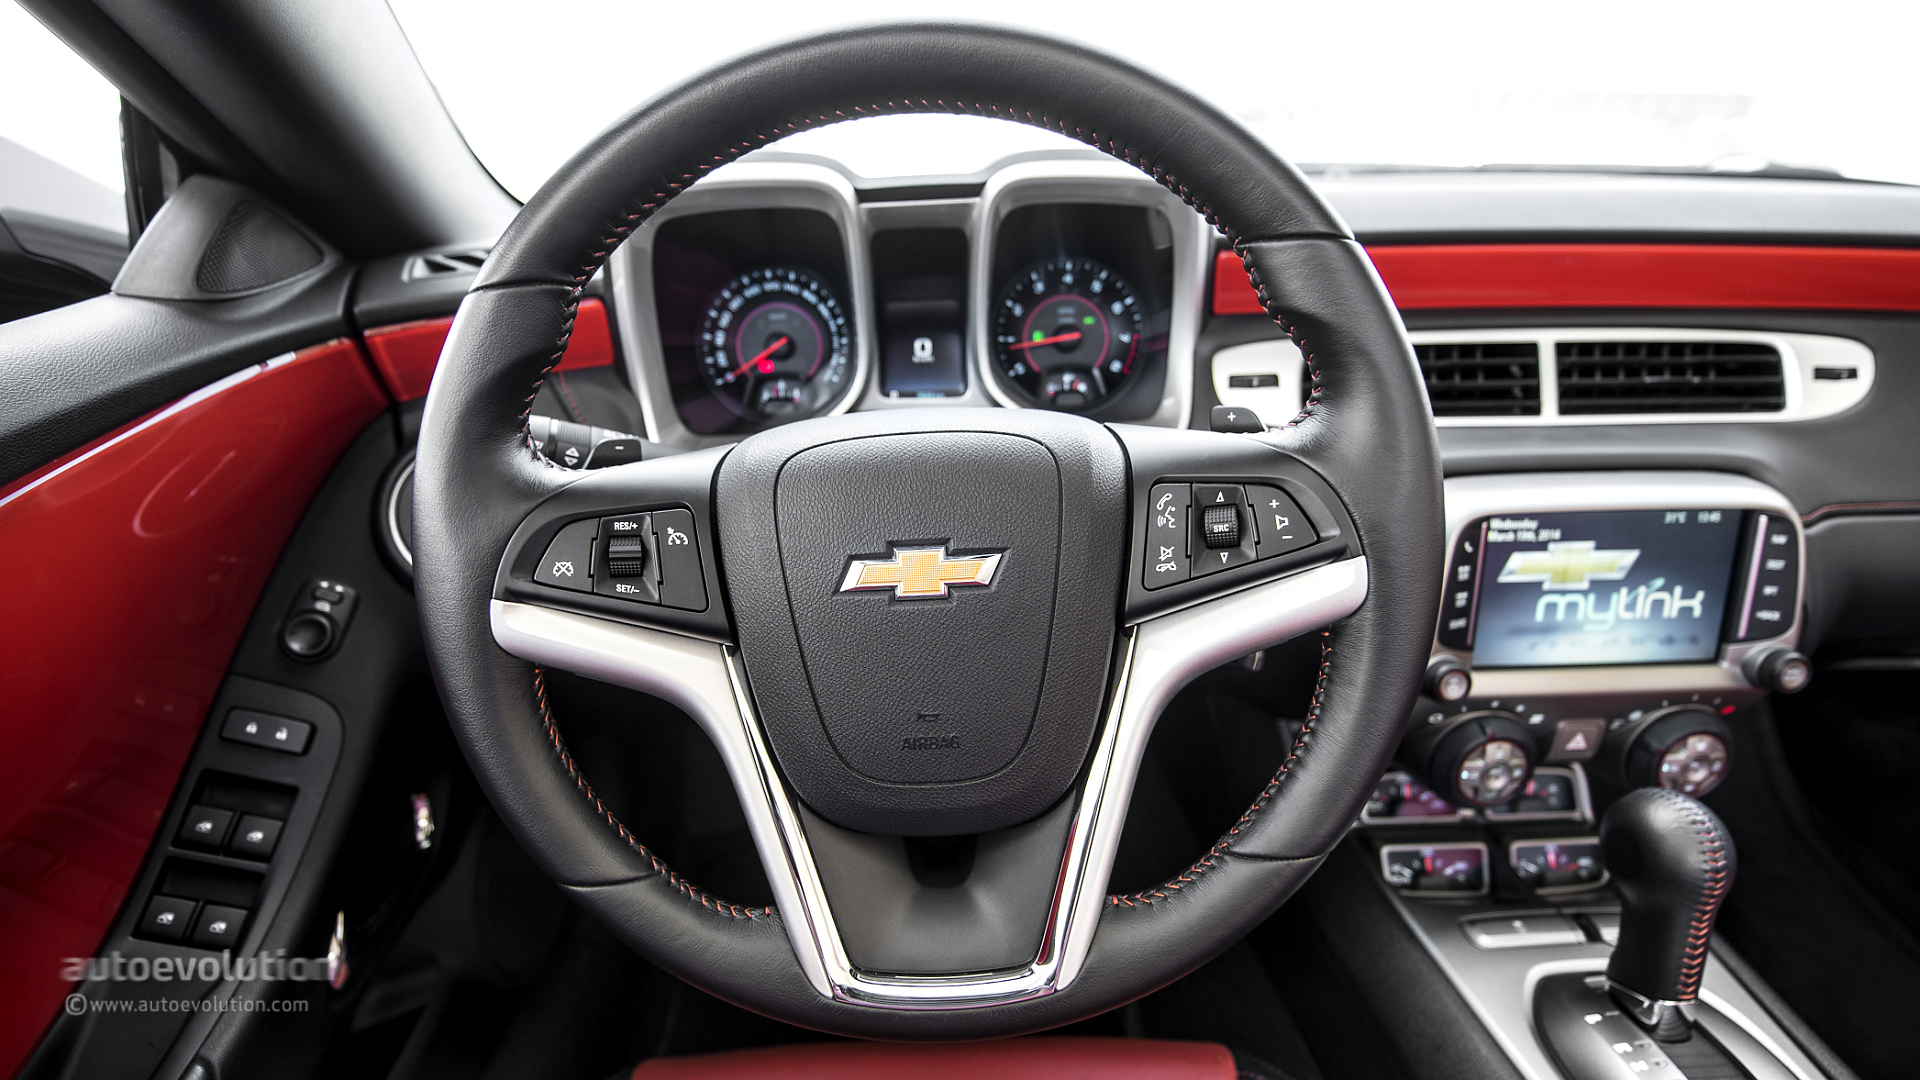 2014 CHEVROLET Camaro RS Convertible Review - autoevolution